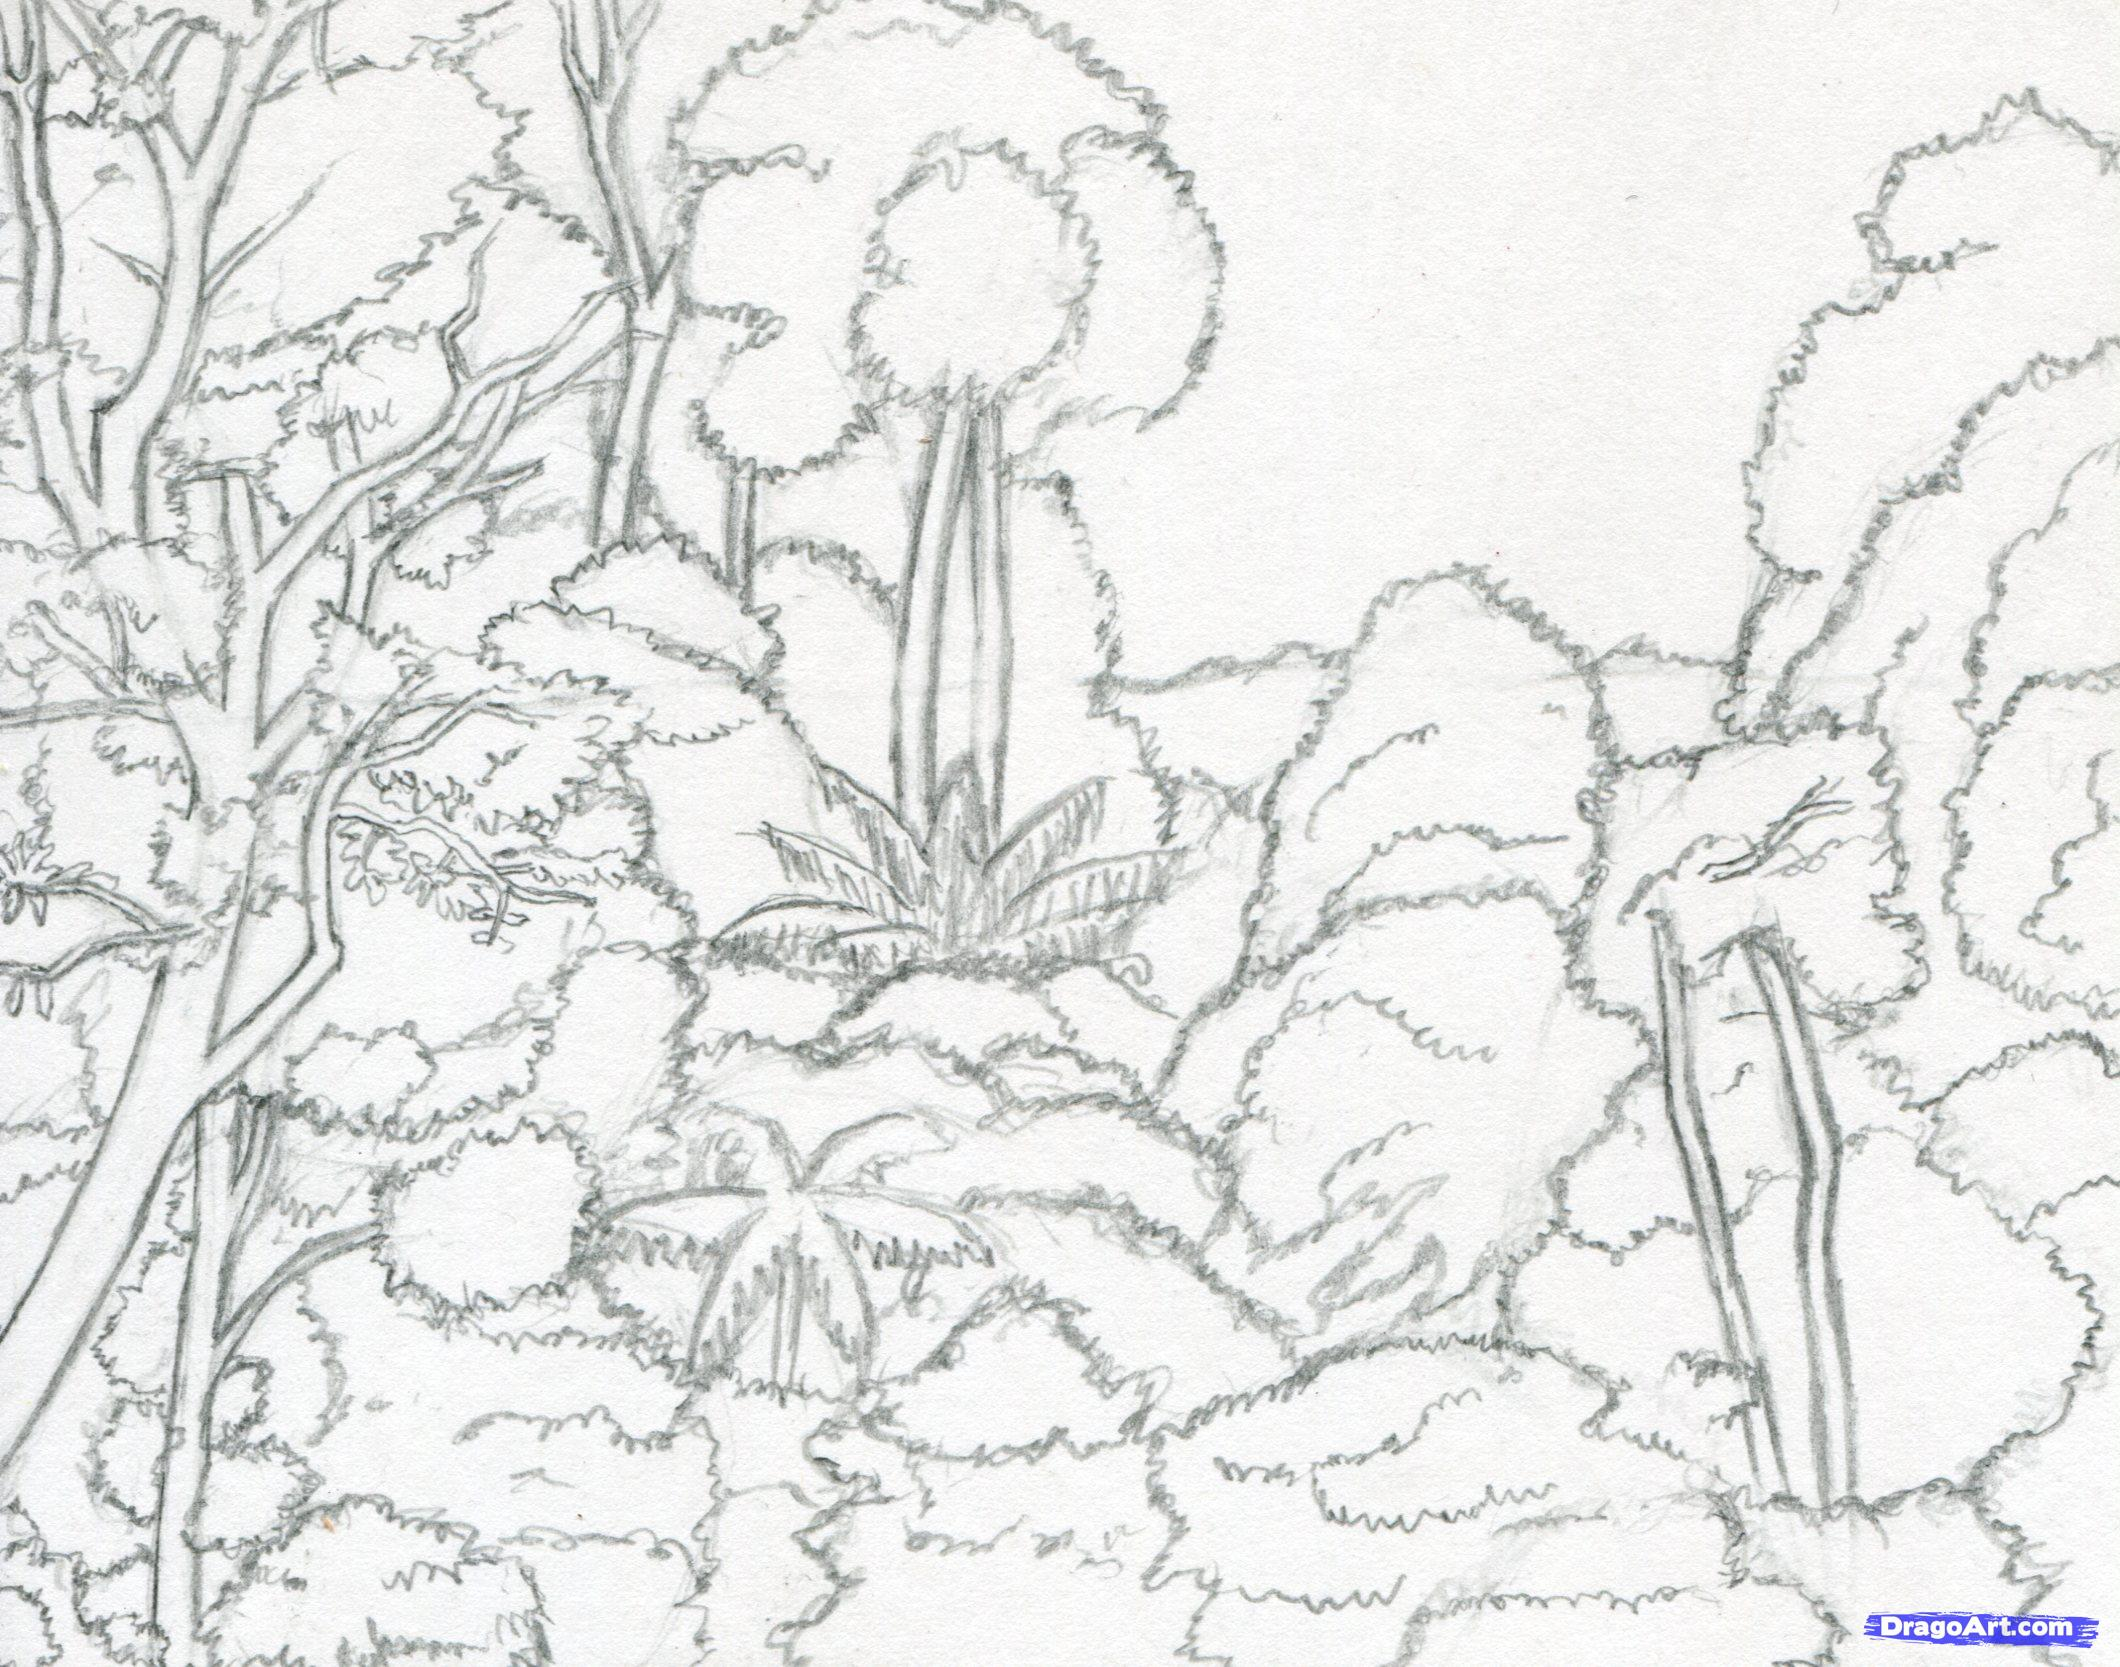 Drawn rainforest Tropical Rainforest Drawing Drawing